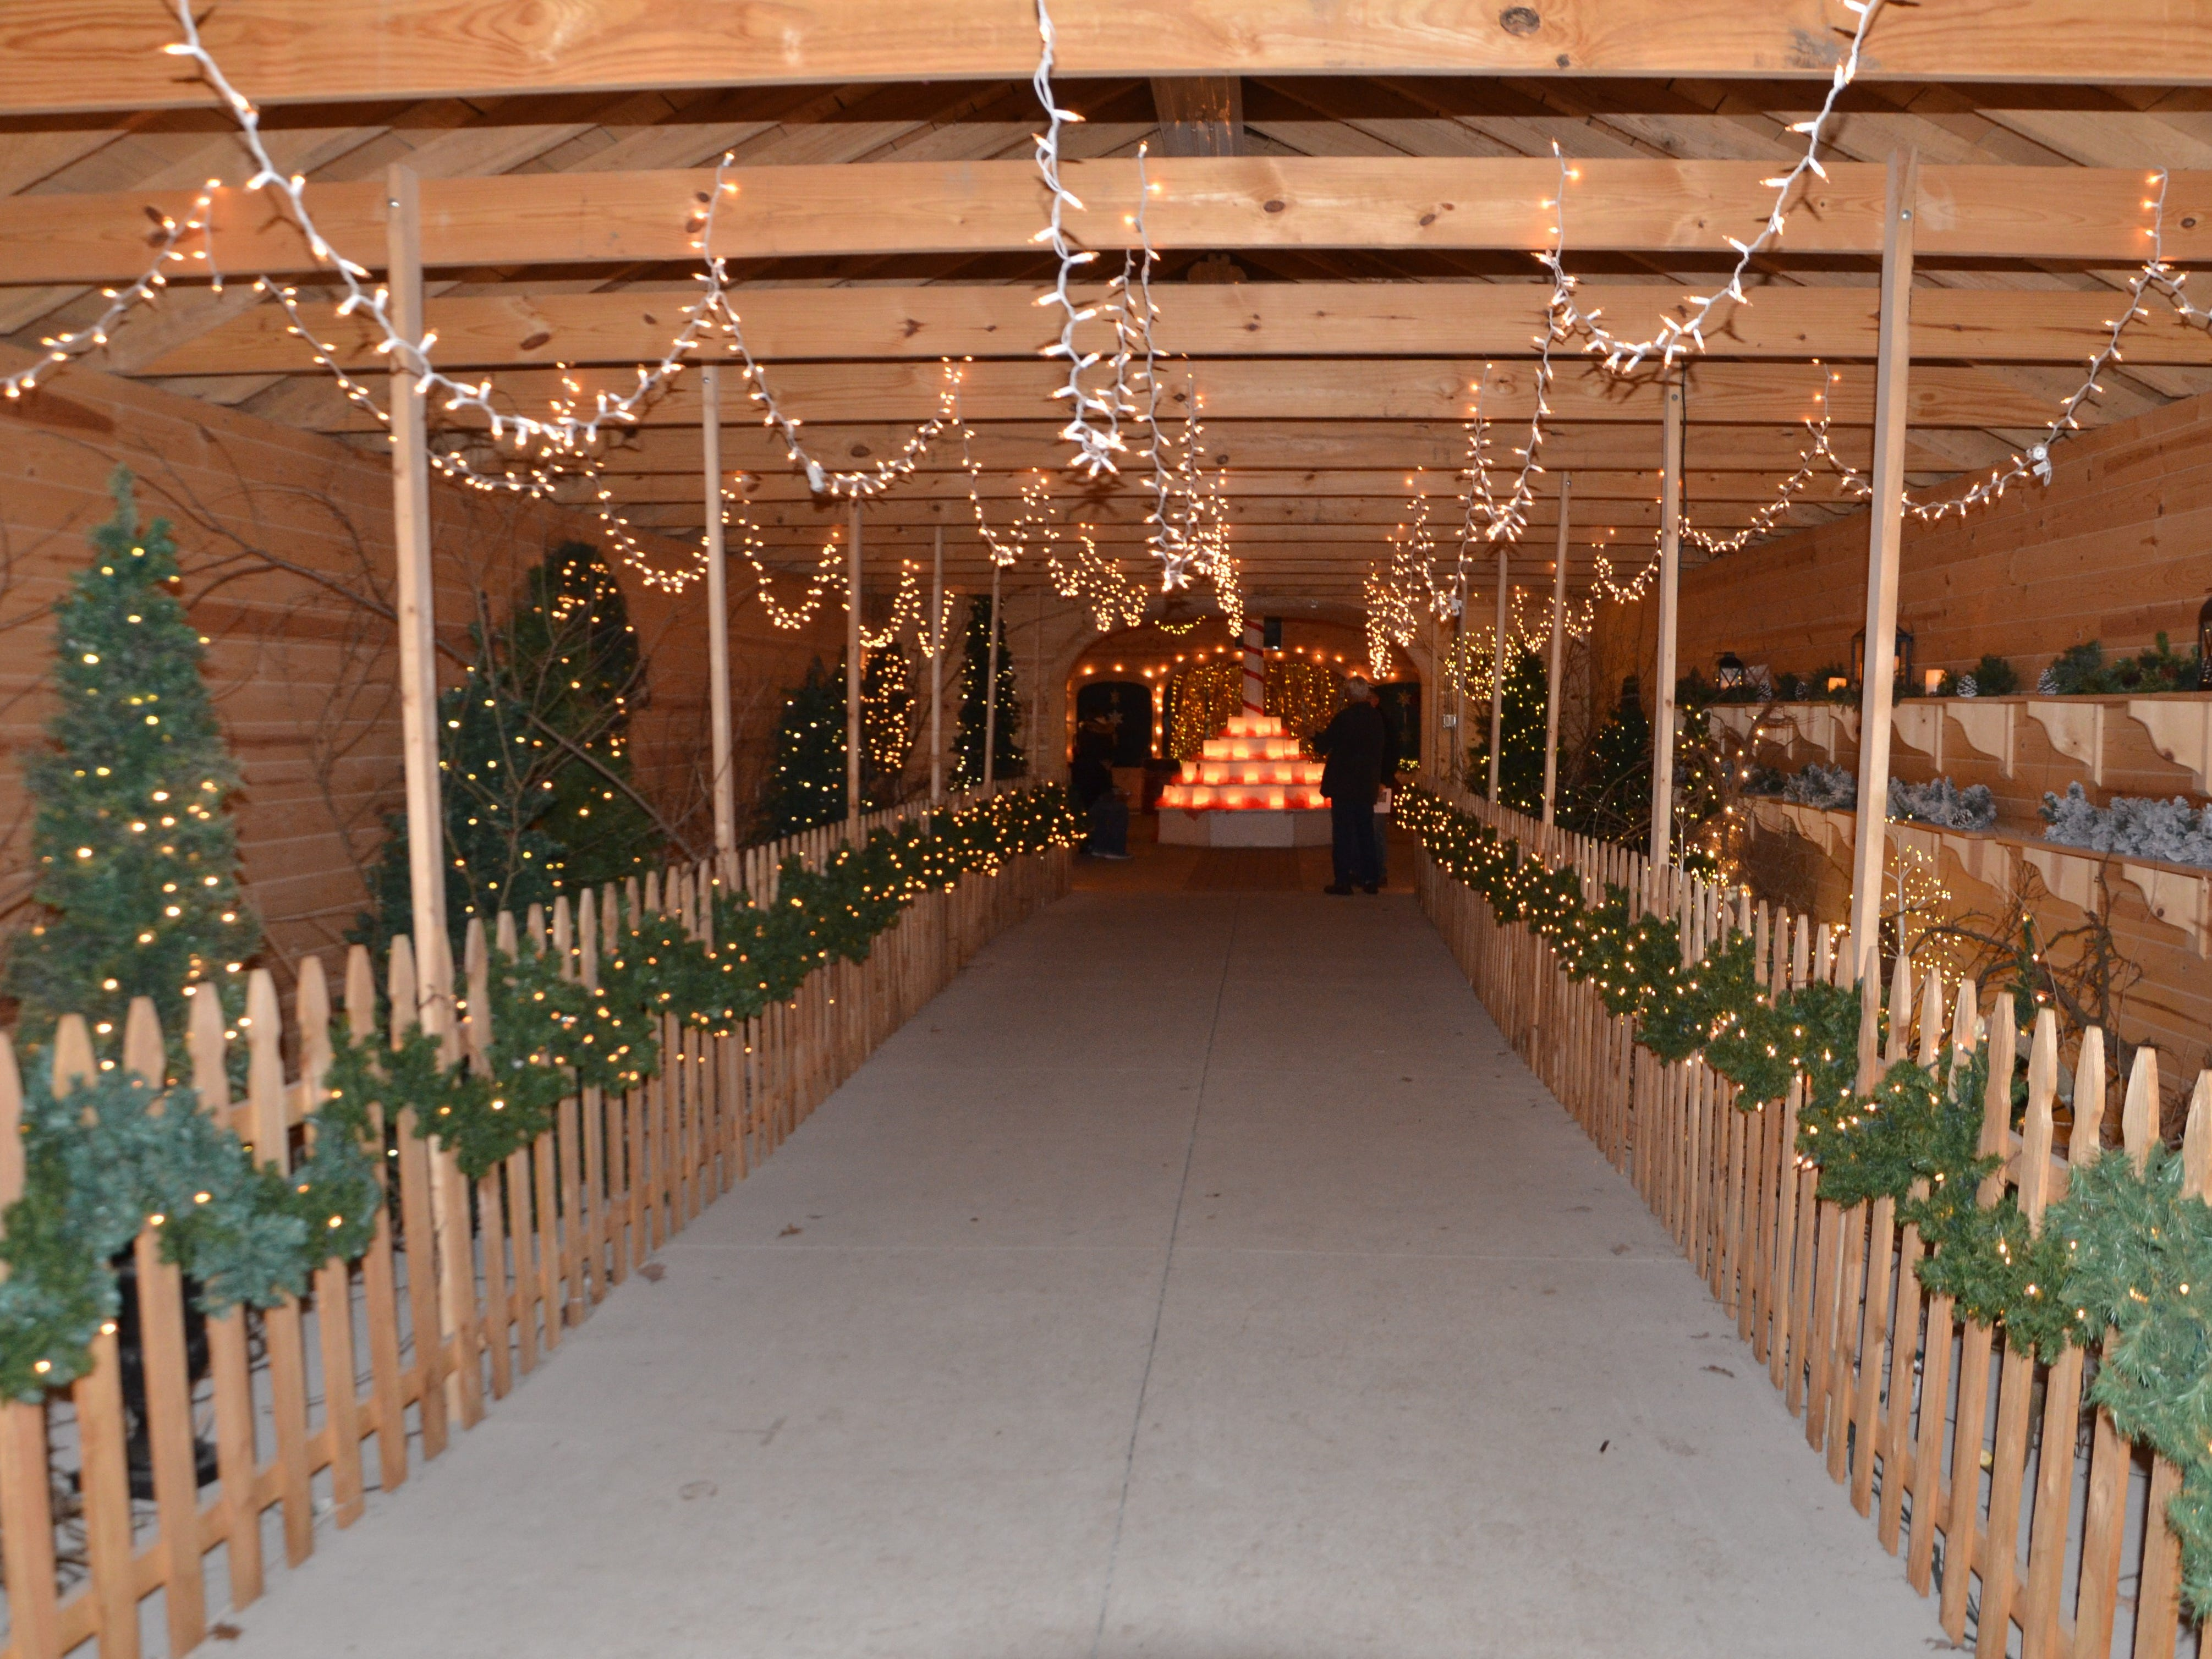 The Floral Hall at the Calhoun County Fairgrounds in Marshall during the Merry Mile.